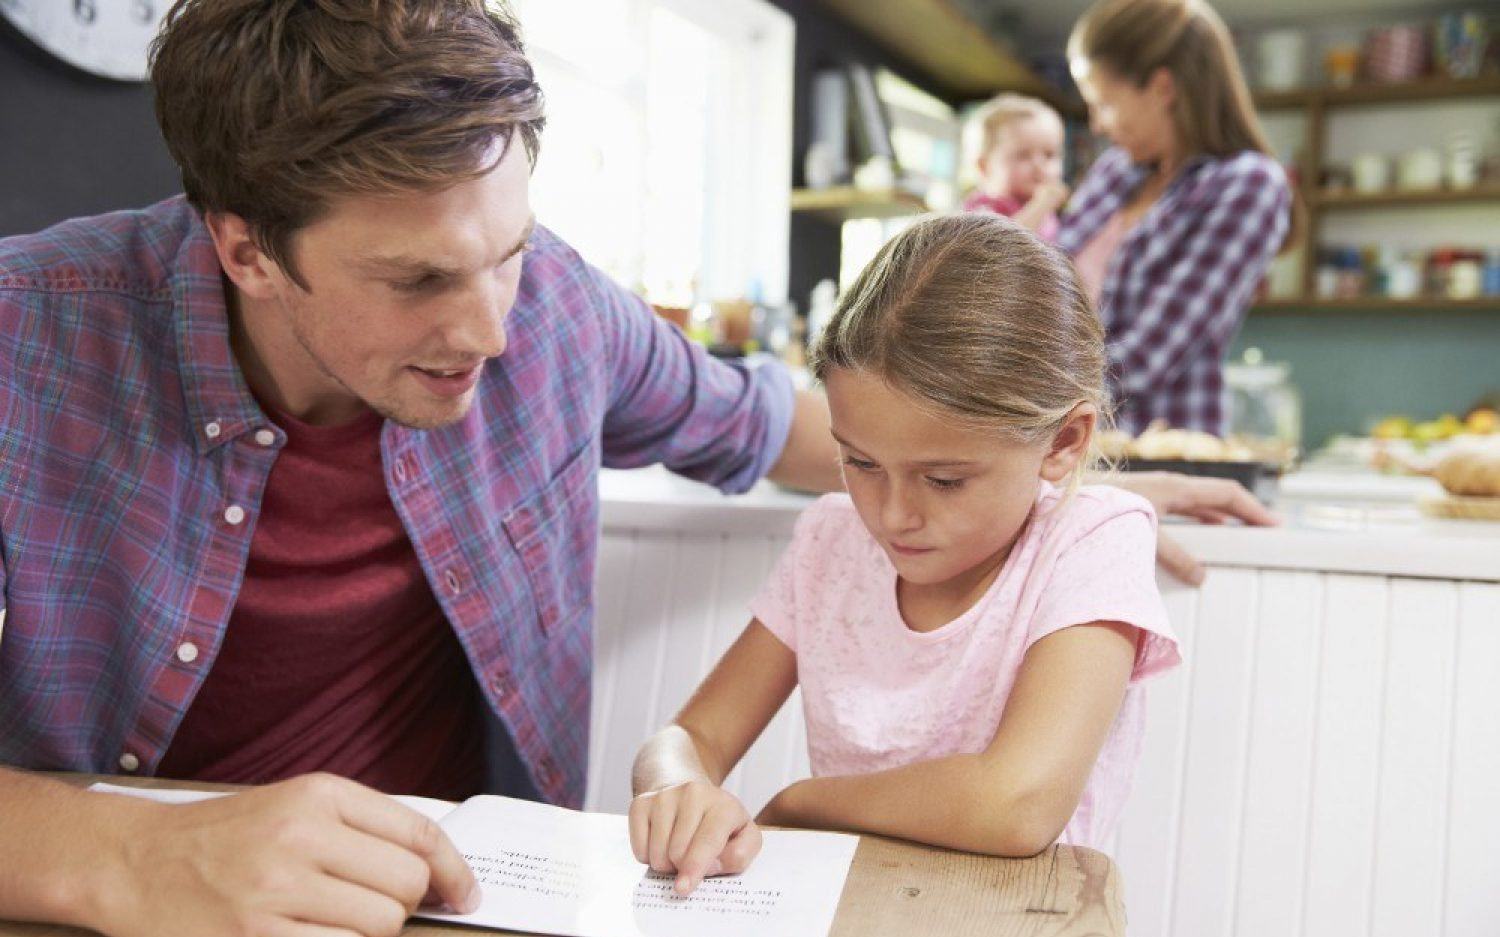 Home education on the rise in Europe